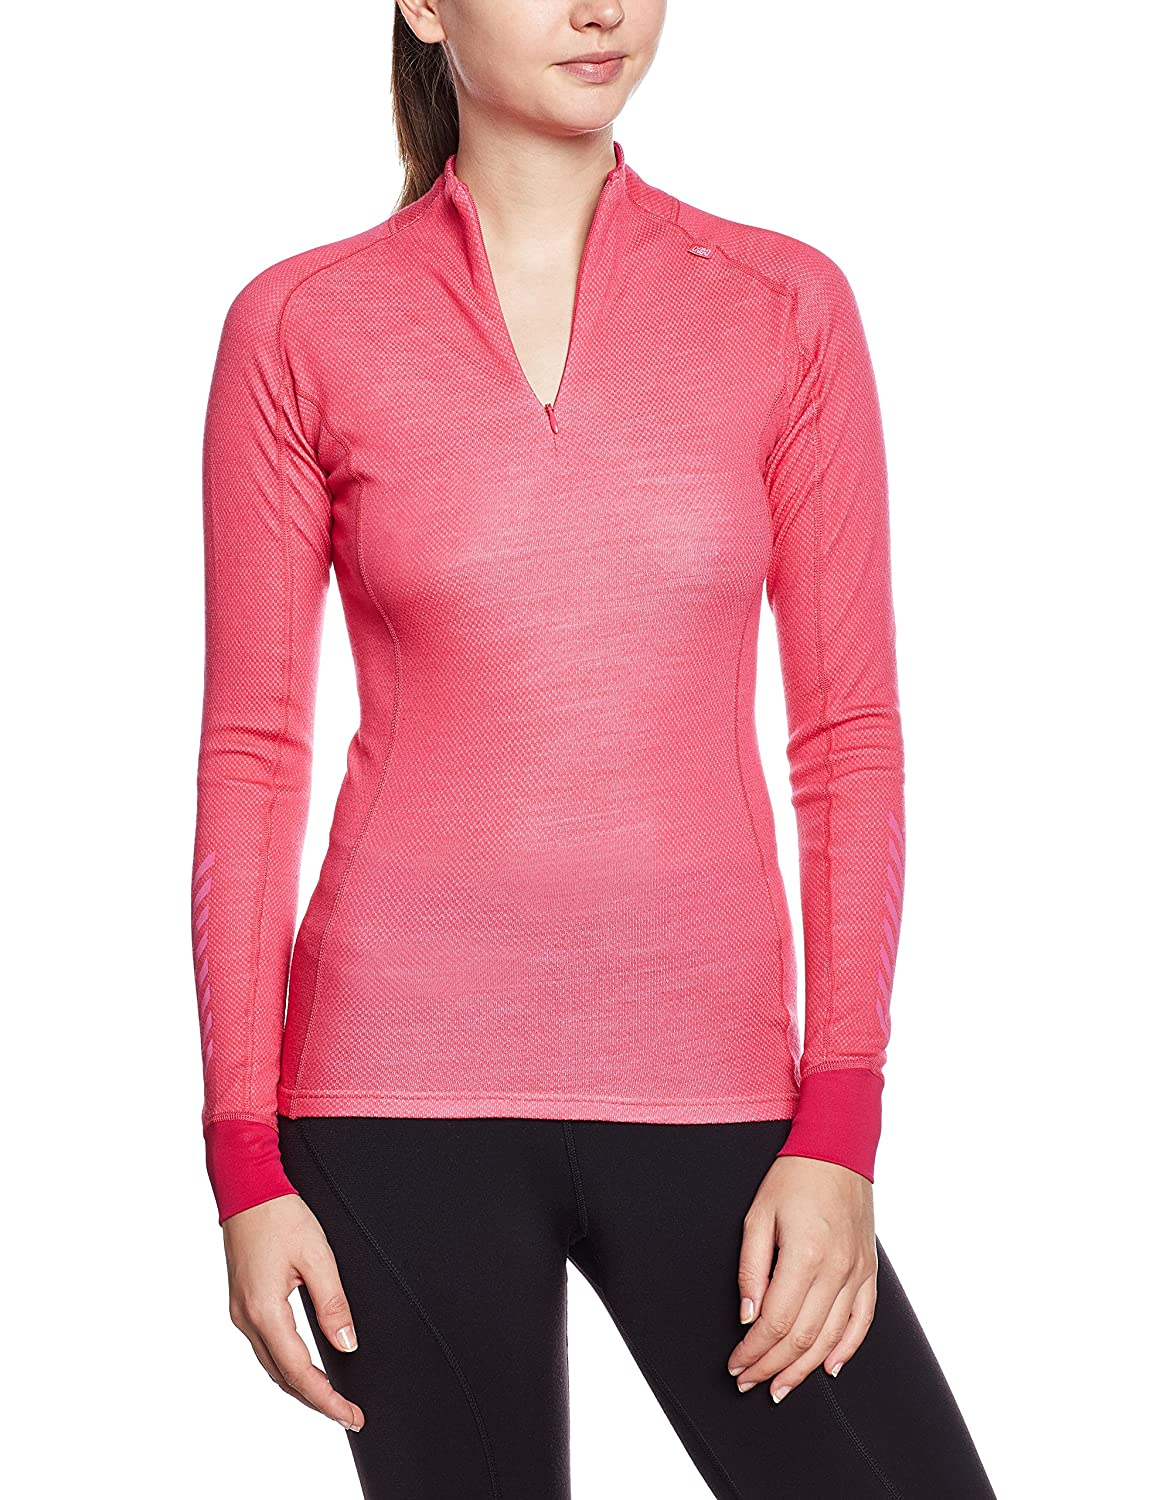 Helly Hansen Women's Warm Freeze 1/2 Zip Base Layer Tops 48543HH